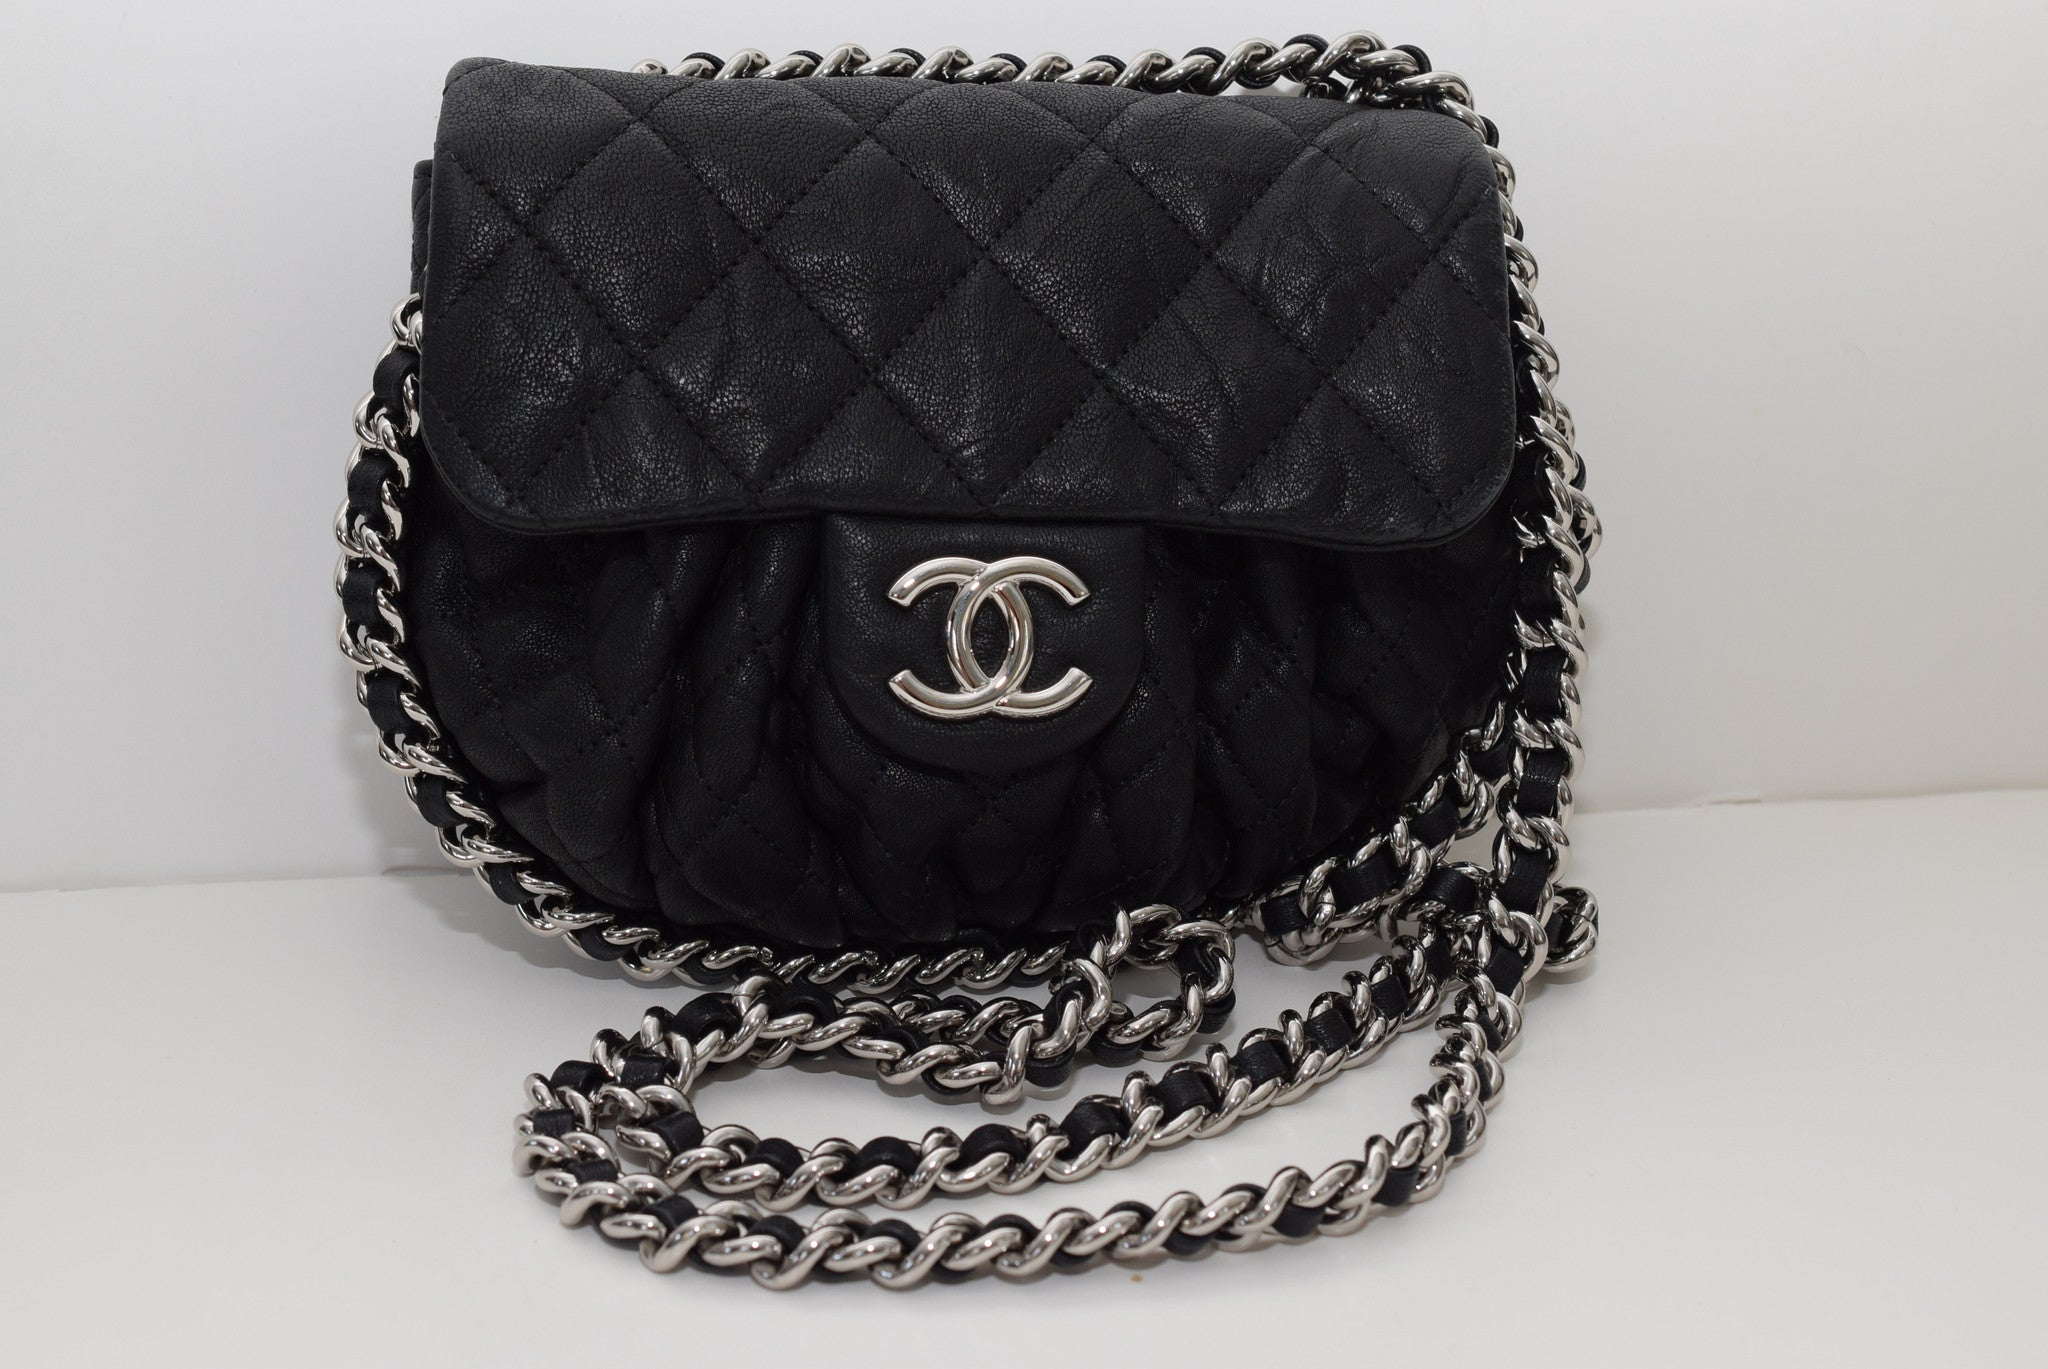 CHANEL Washed Lambskin Quilted Small Chain Around Black W palladium  Hardware Cross Body Bag ... 681ece3070639